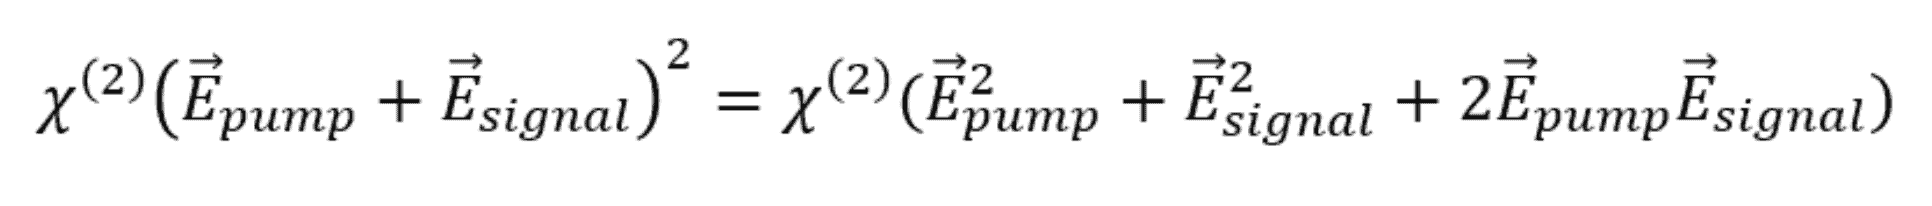 Optical parametric amplifier tensor product equation